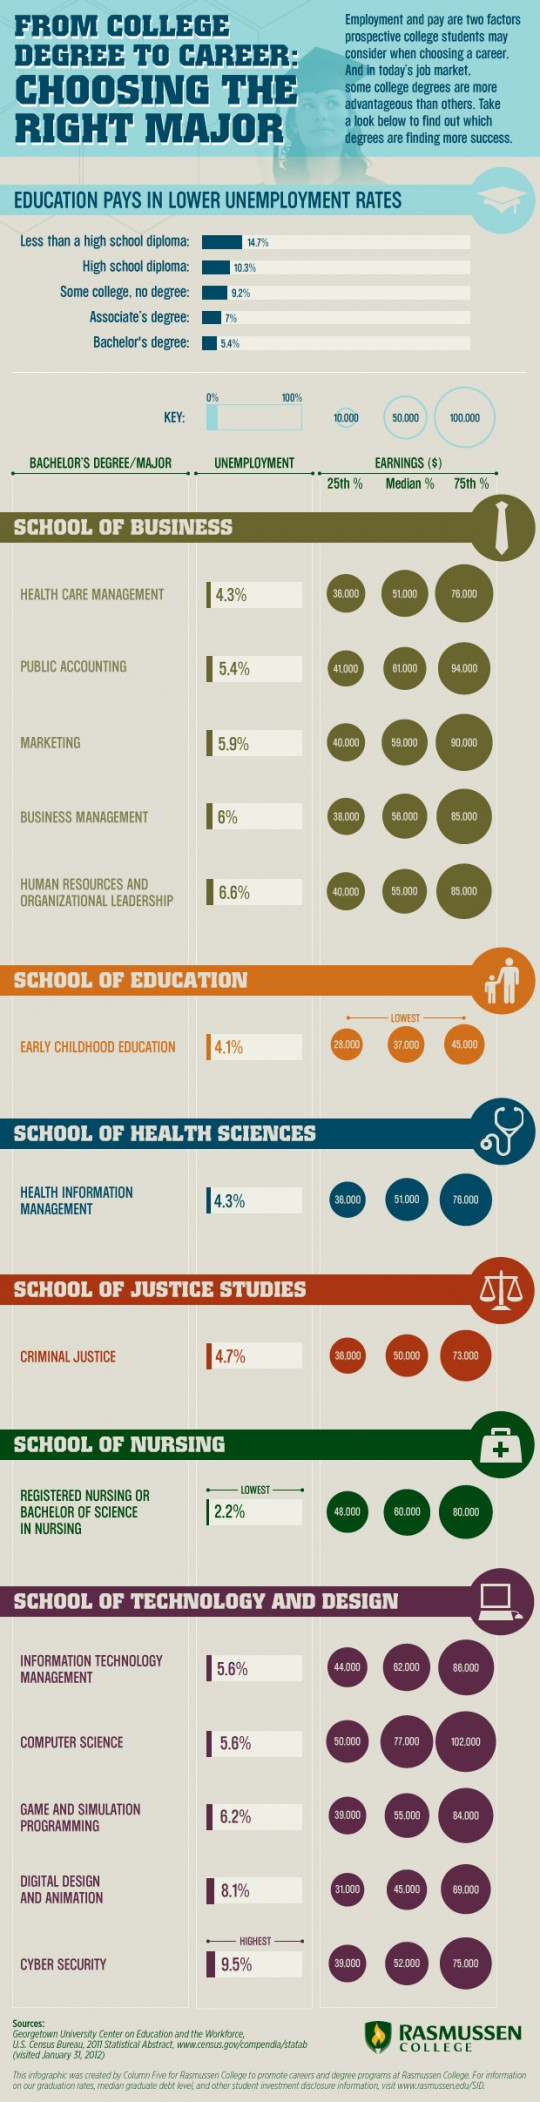 From College Degree to Career: Choosing the Right Major